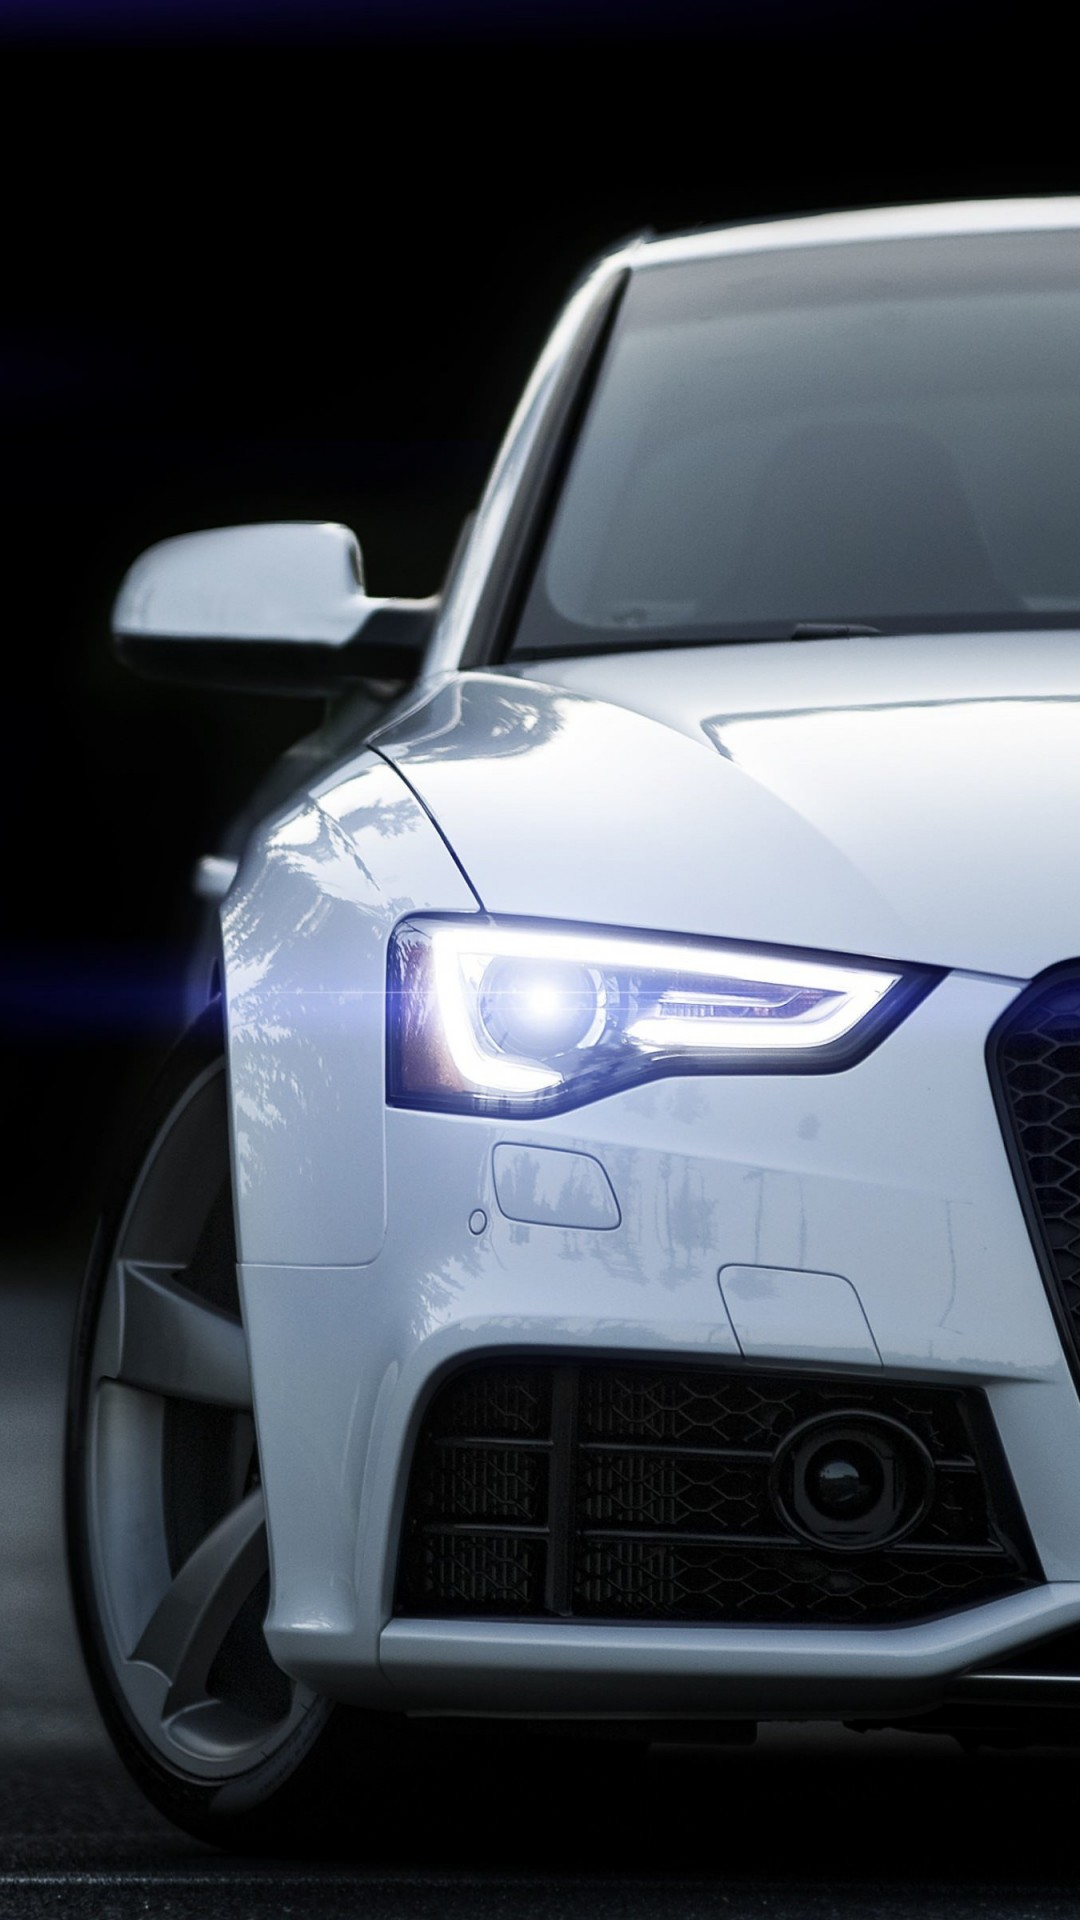 2015 Audi RS 5 Coupe Wallpaper for SONY Xperia Z1